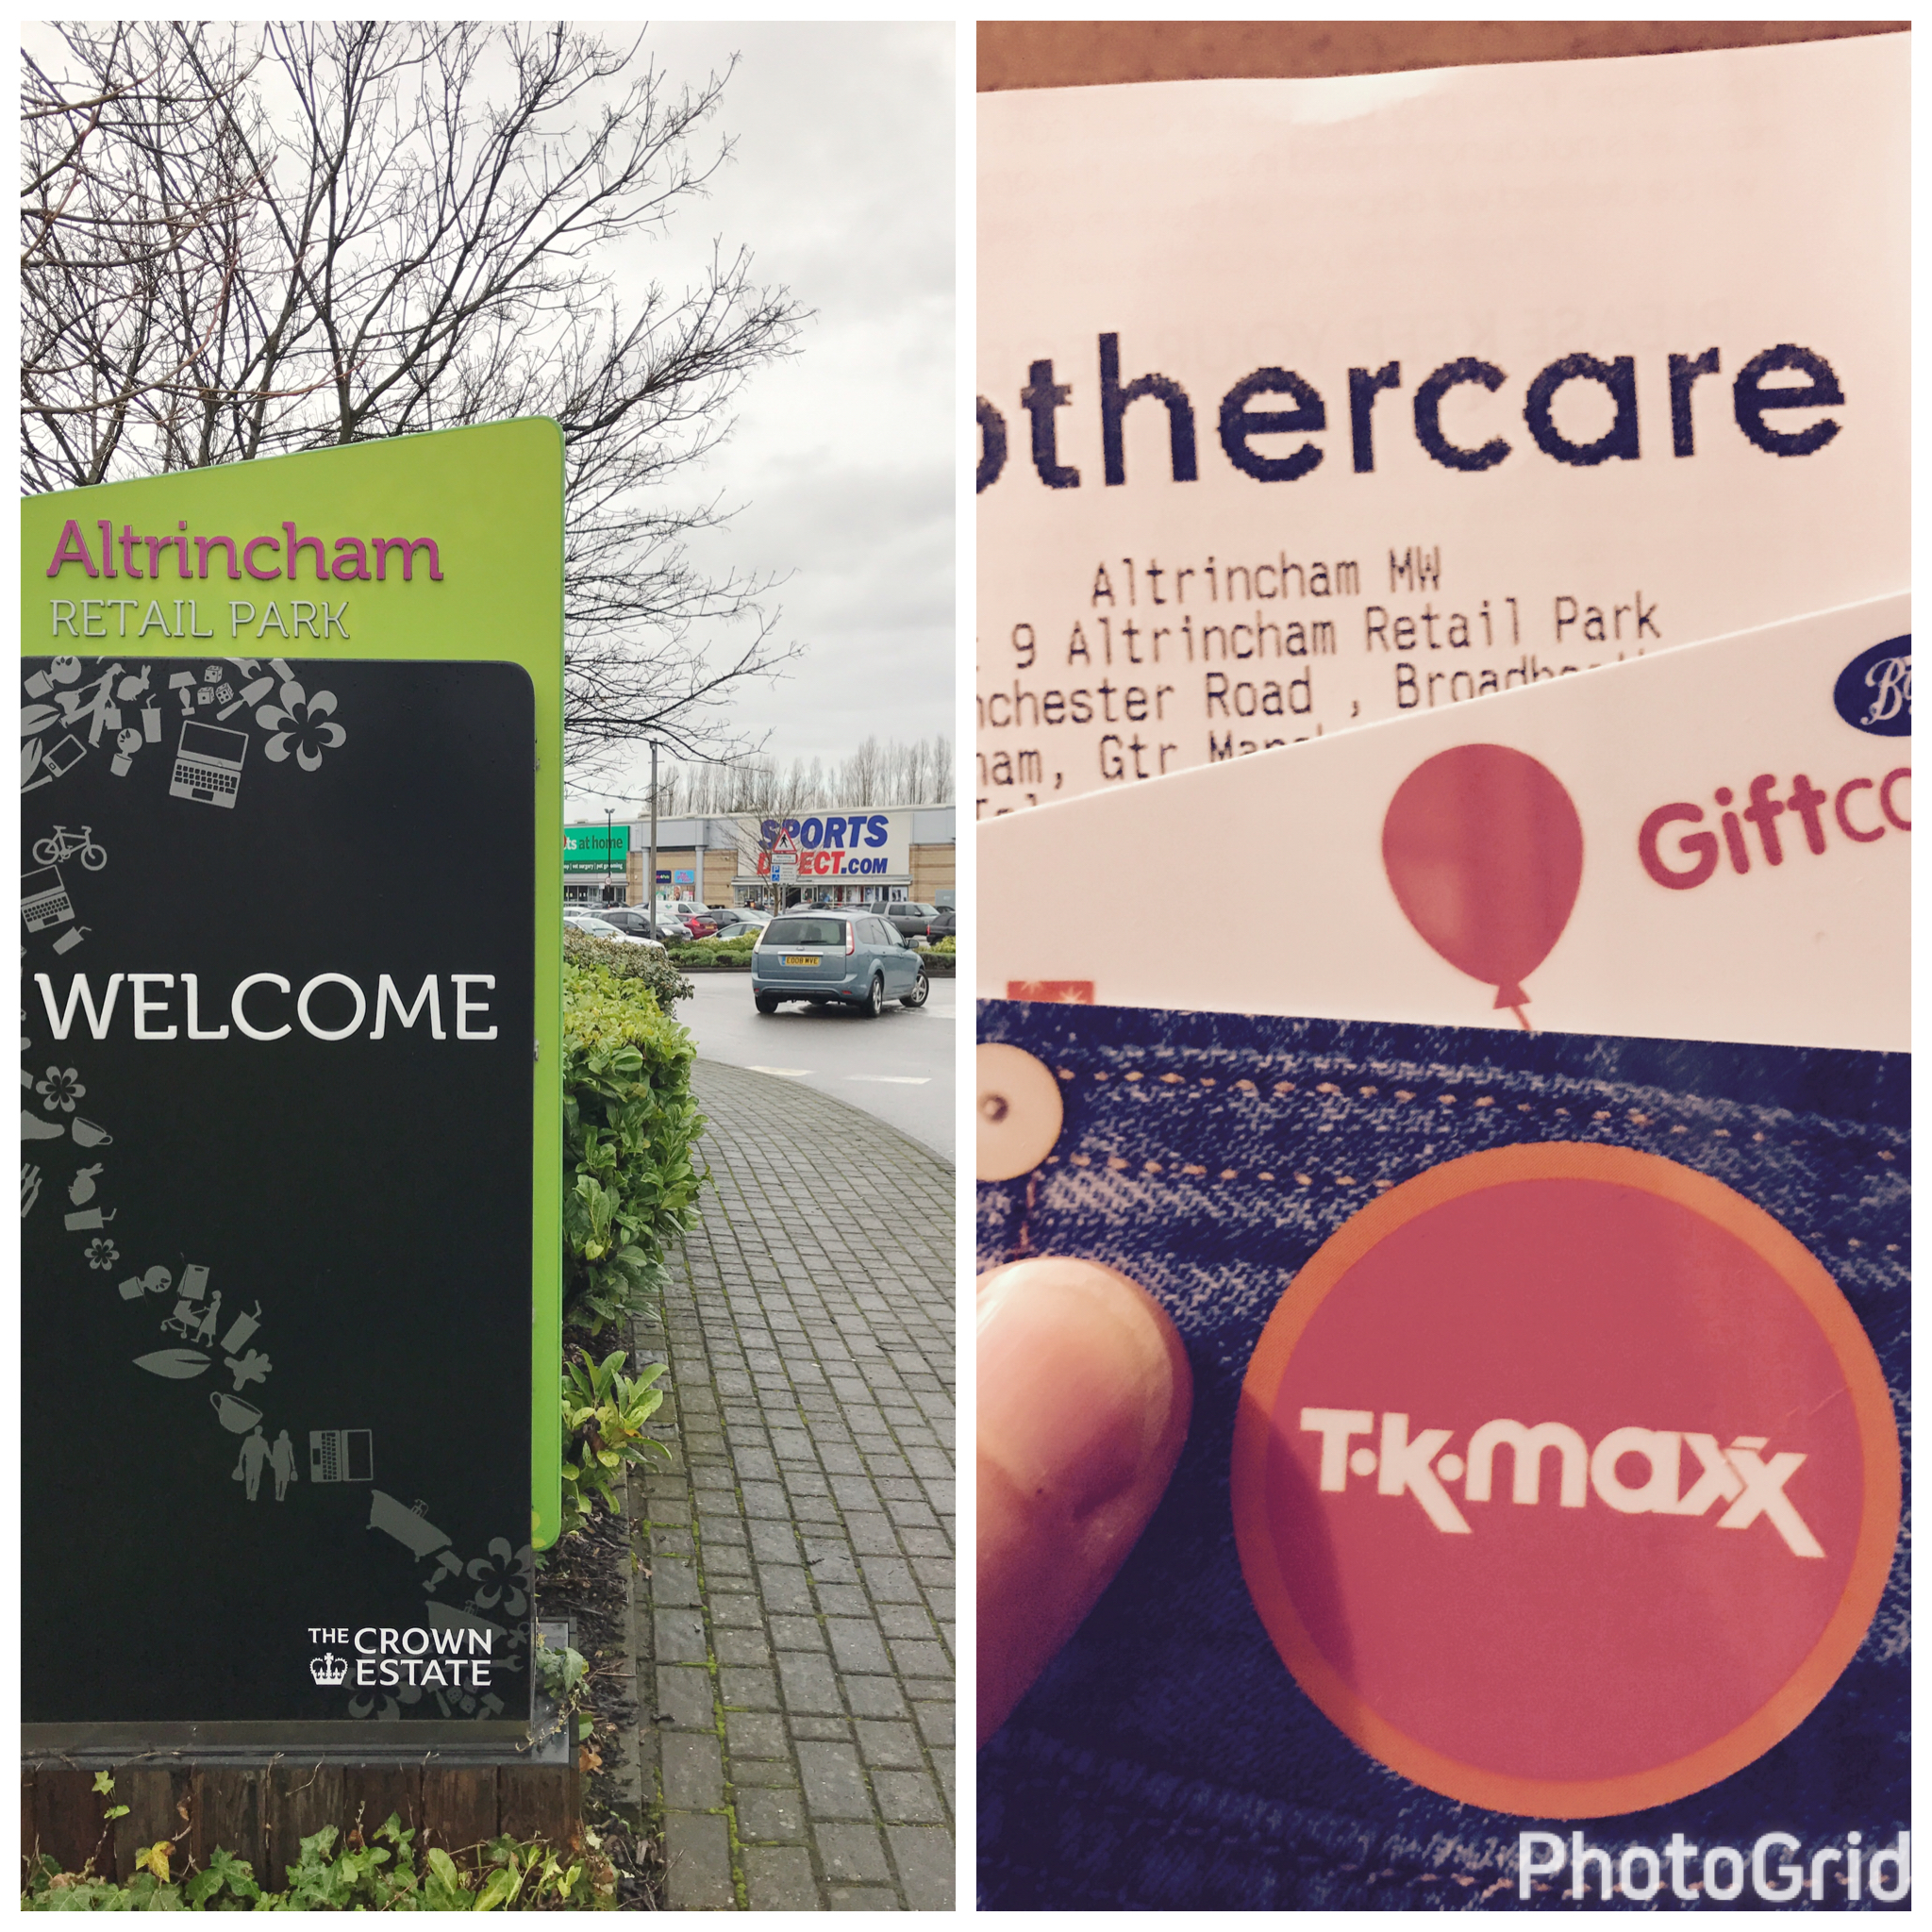 Altrincham Retail Park and gift cards